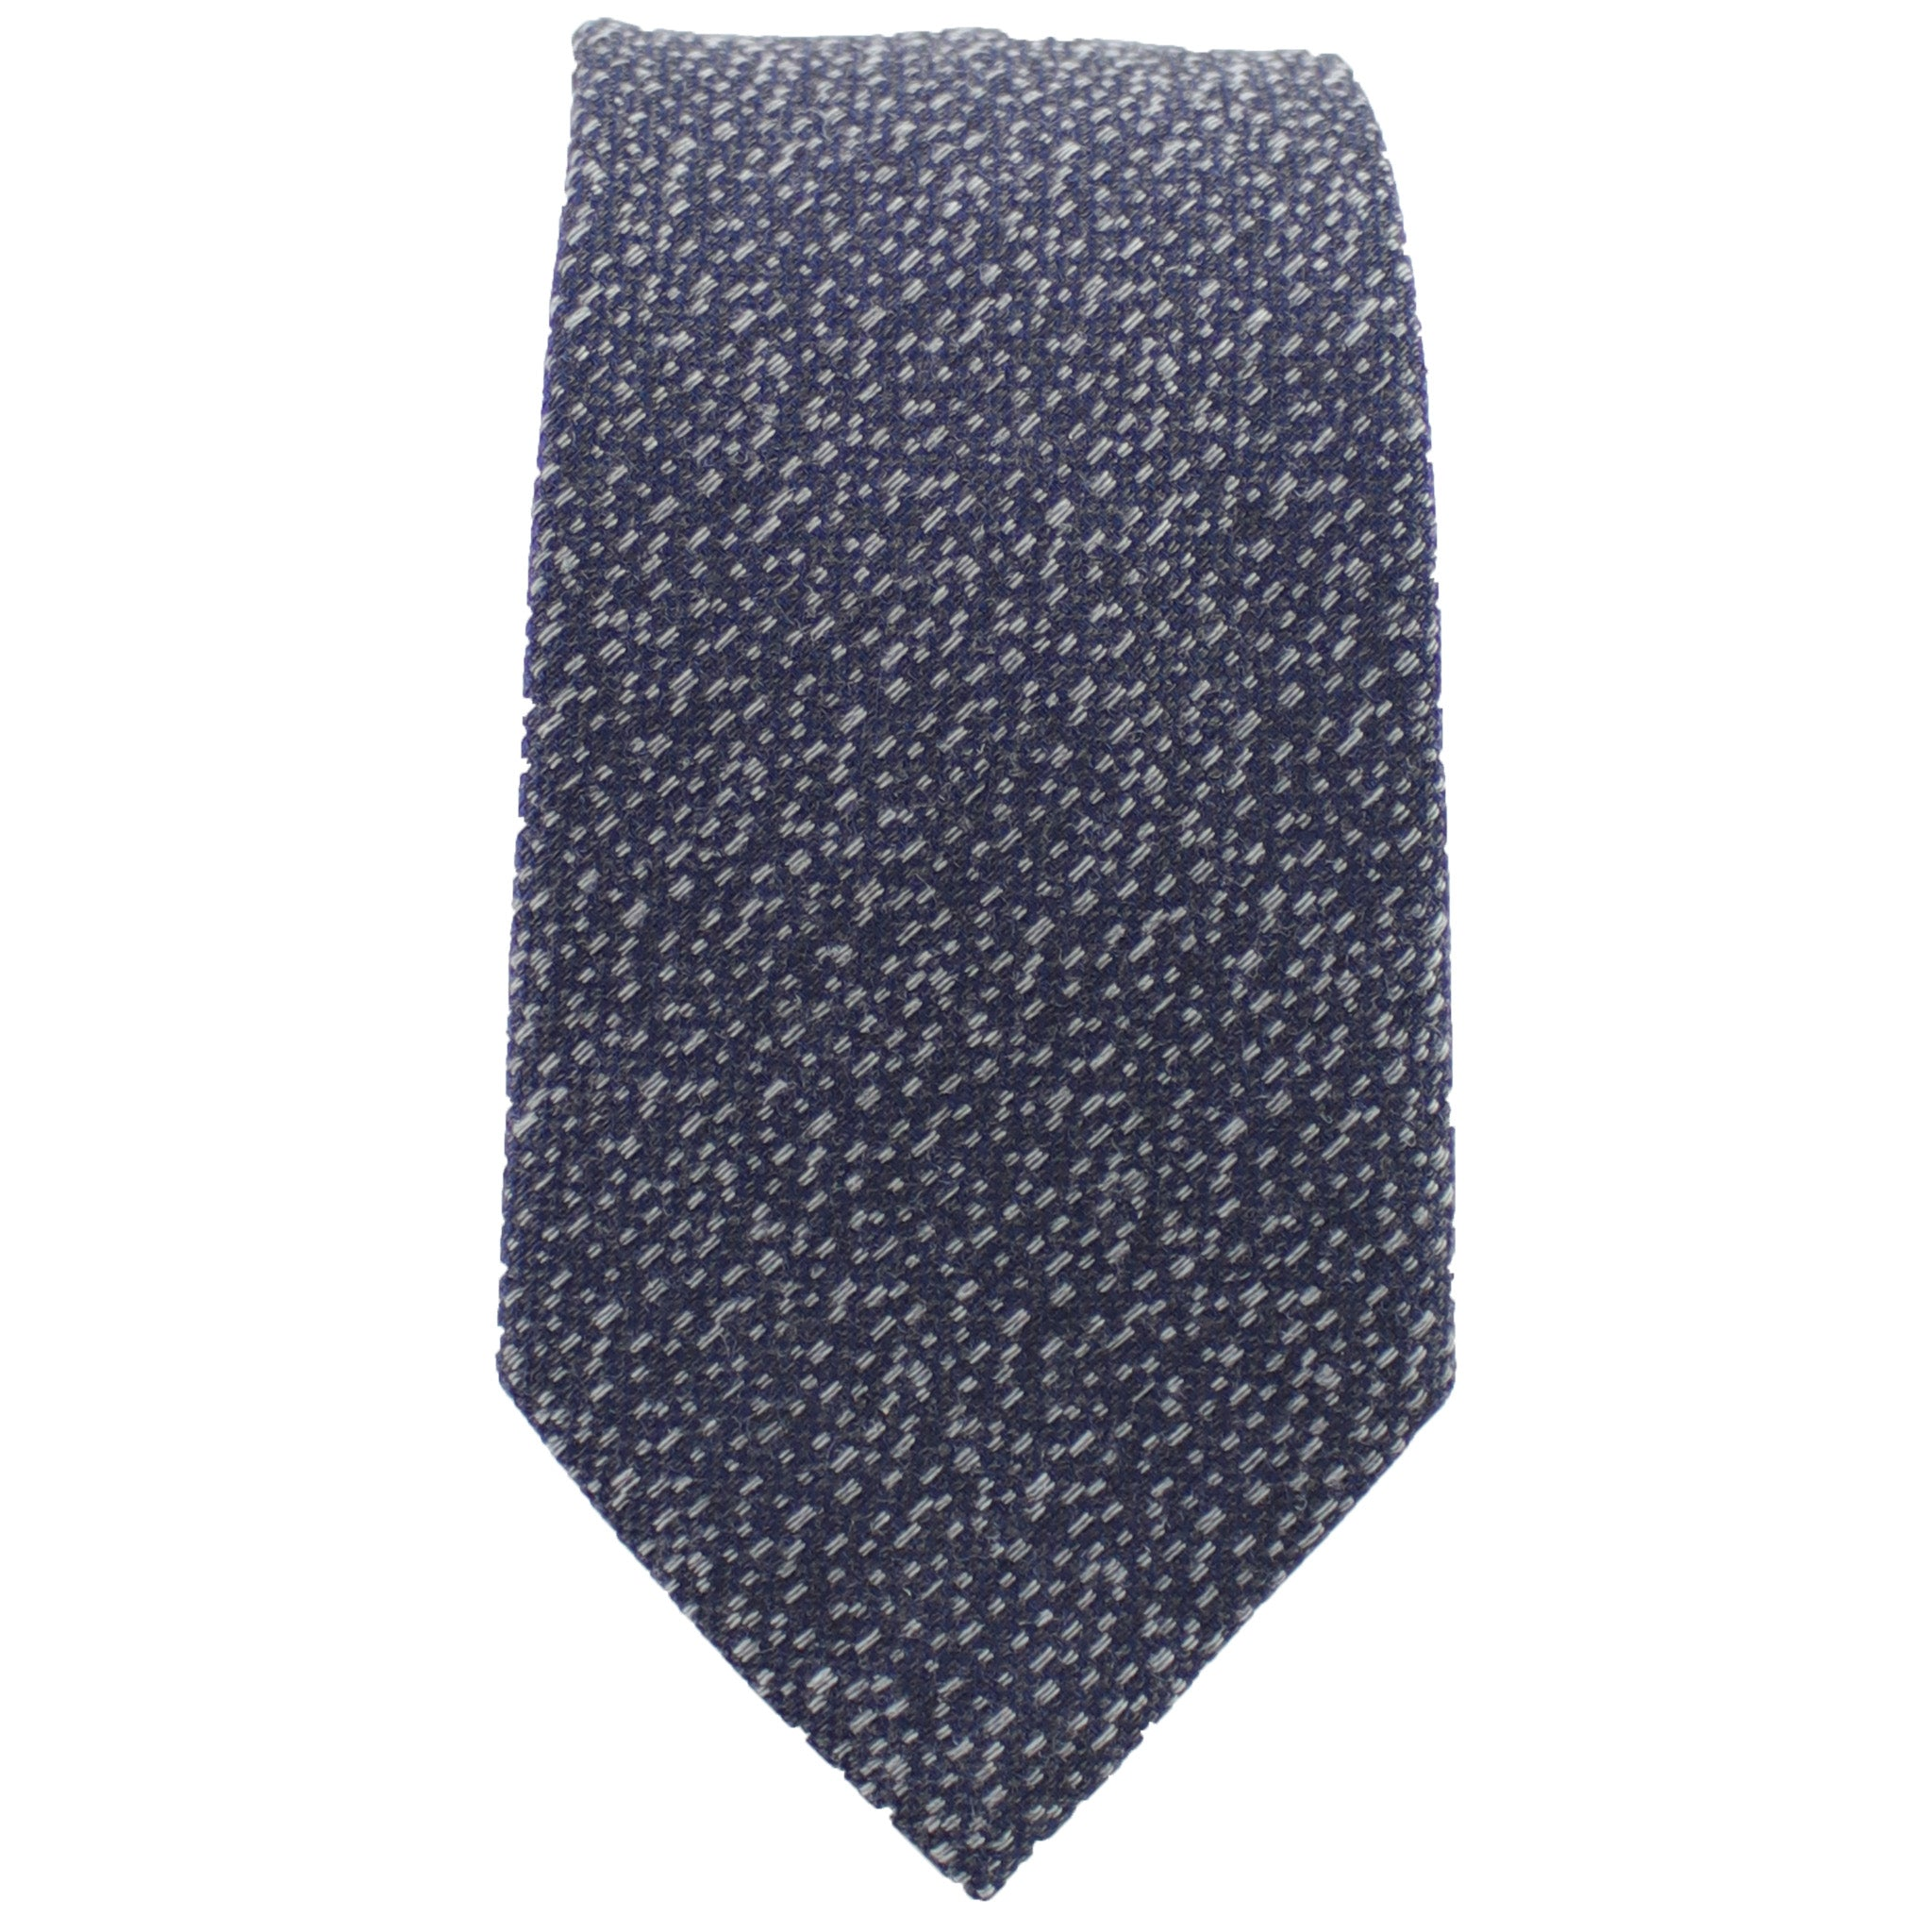 Charcoal & Silver Heather Tie from DIBI